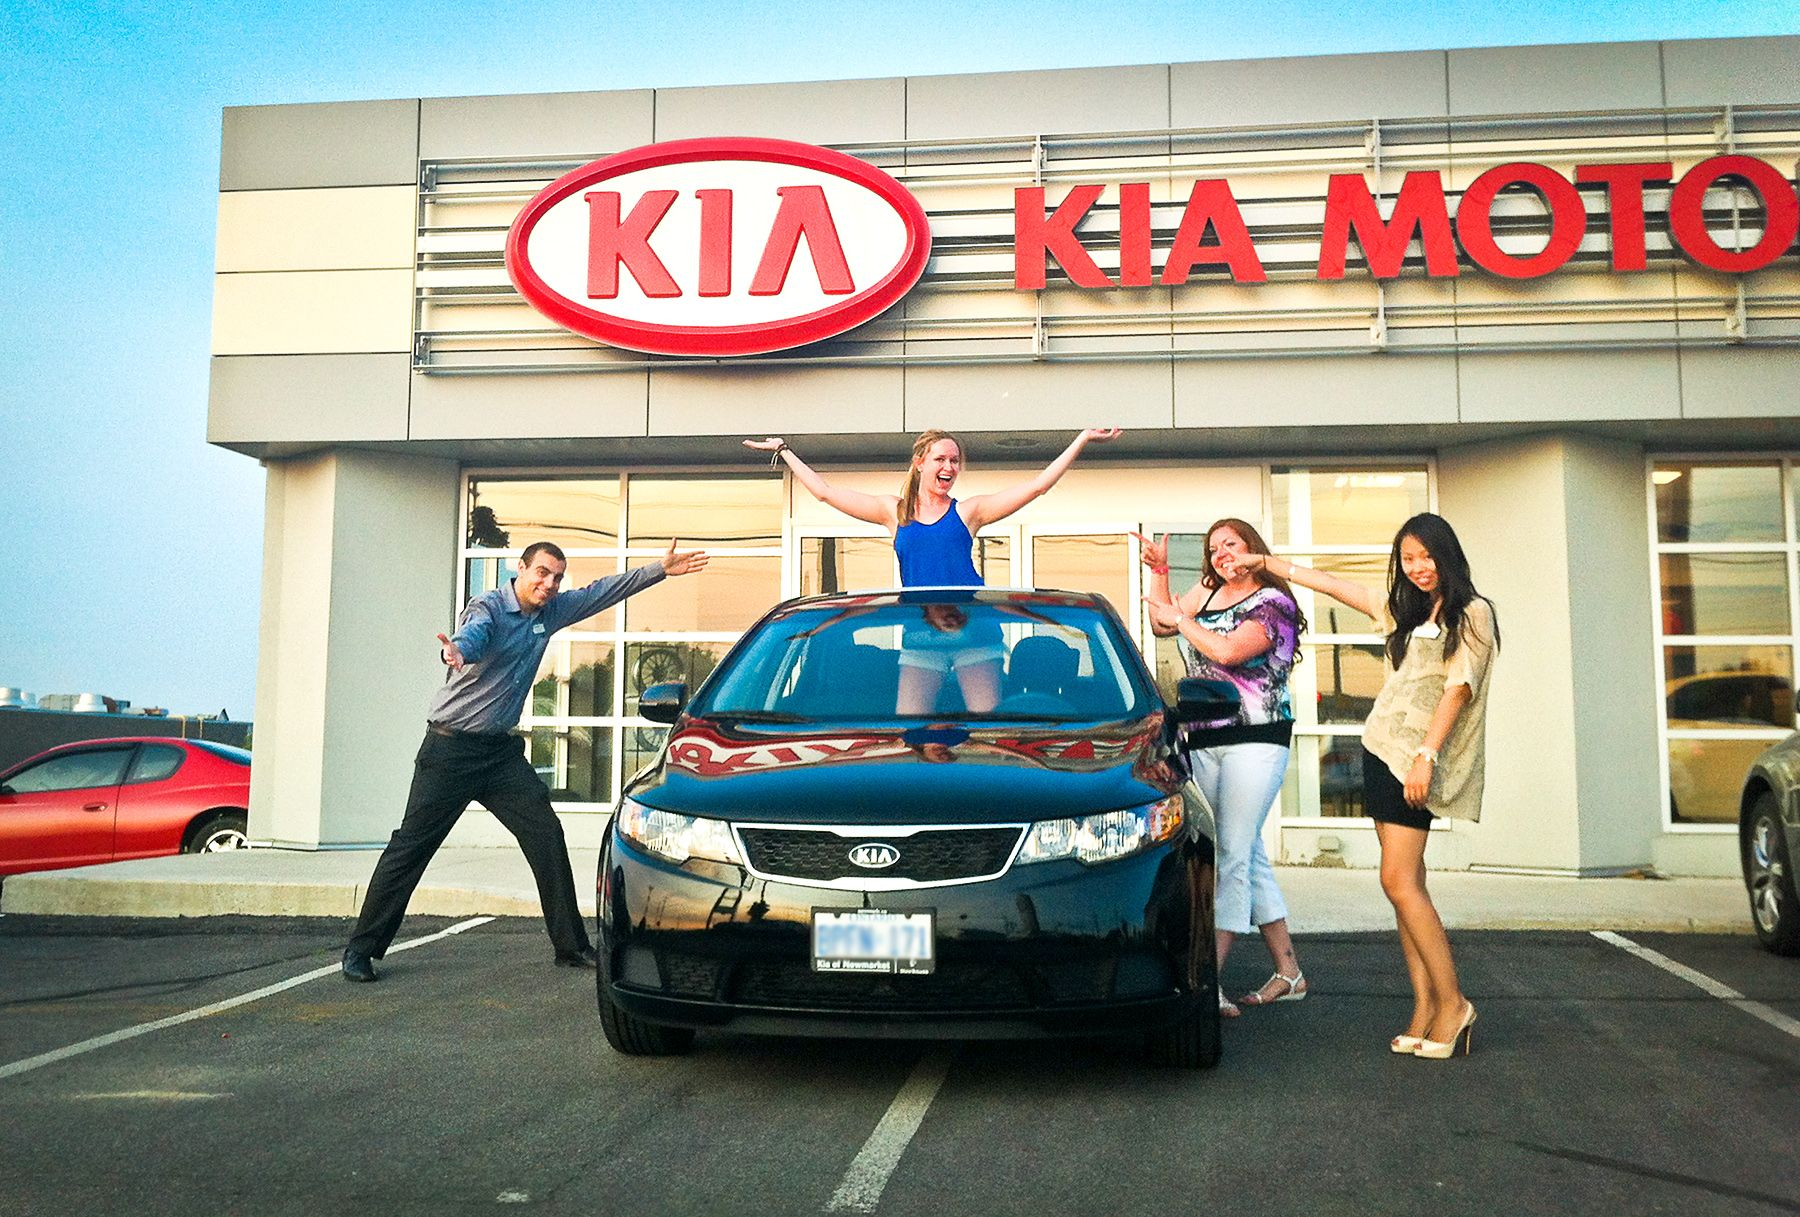 Picking up her new 2013 Kia Forte in Newmarket tario